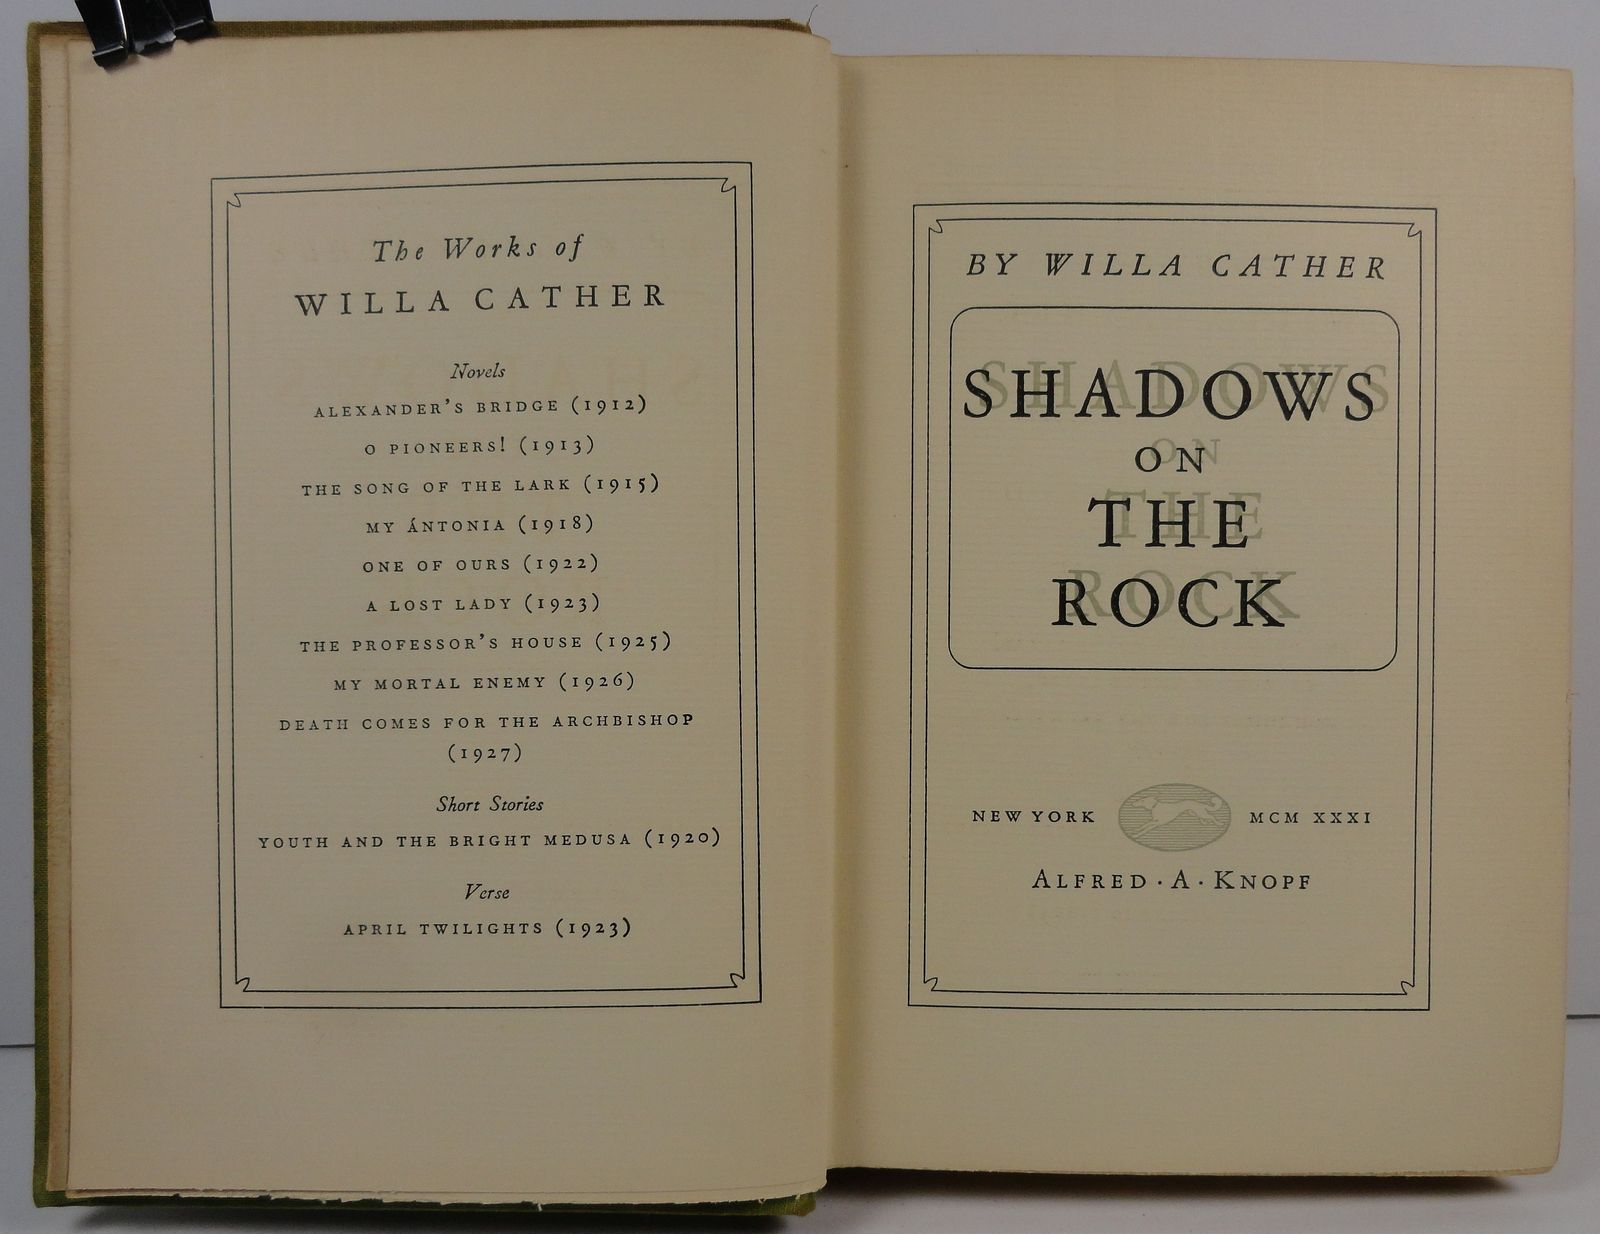 Shadows on the Rock by Willa Cather 1931 Alfred A. Knopf